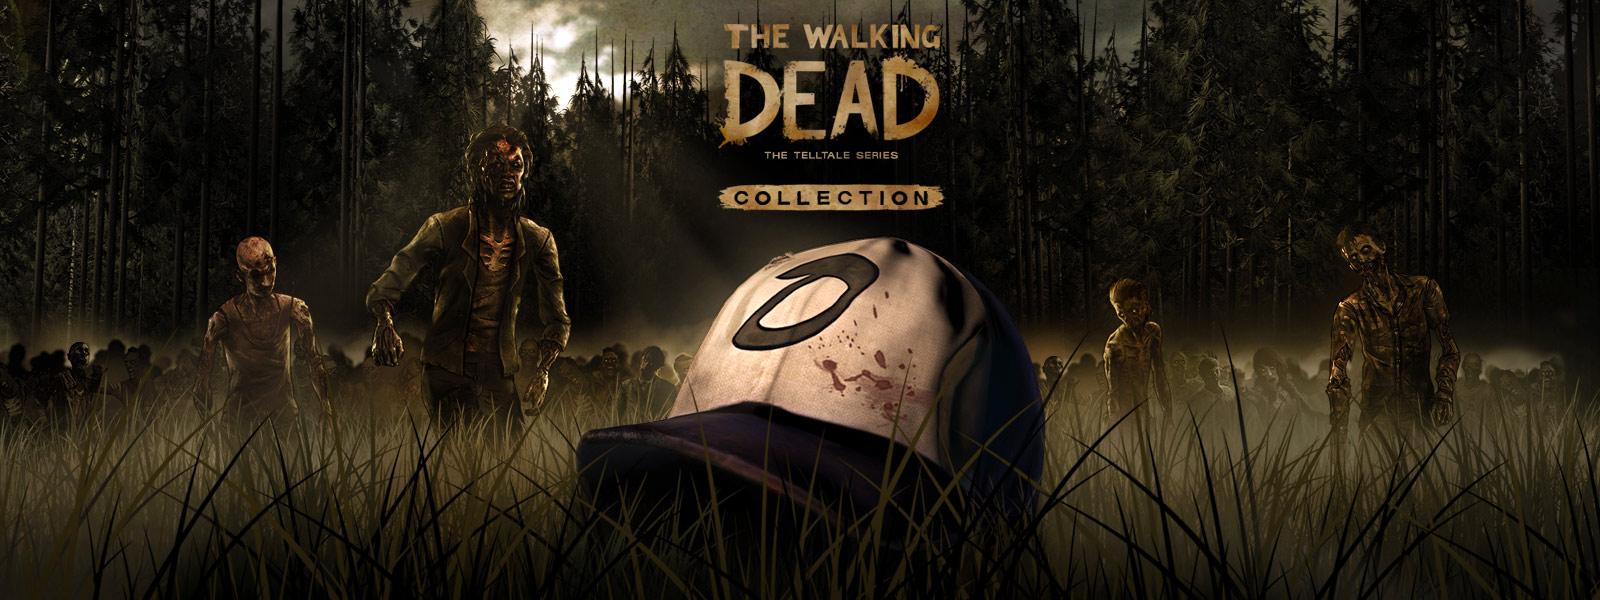 La collection The Walking Dead - The Telltale series (Le chapeau de Clémentine posé dans un champ tandis qu'une horde de zombies approche)